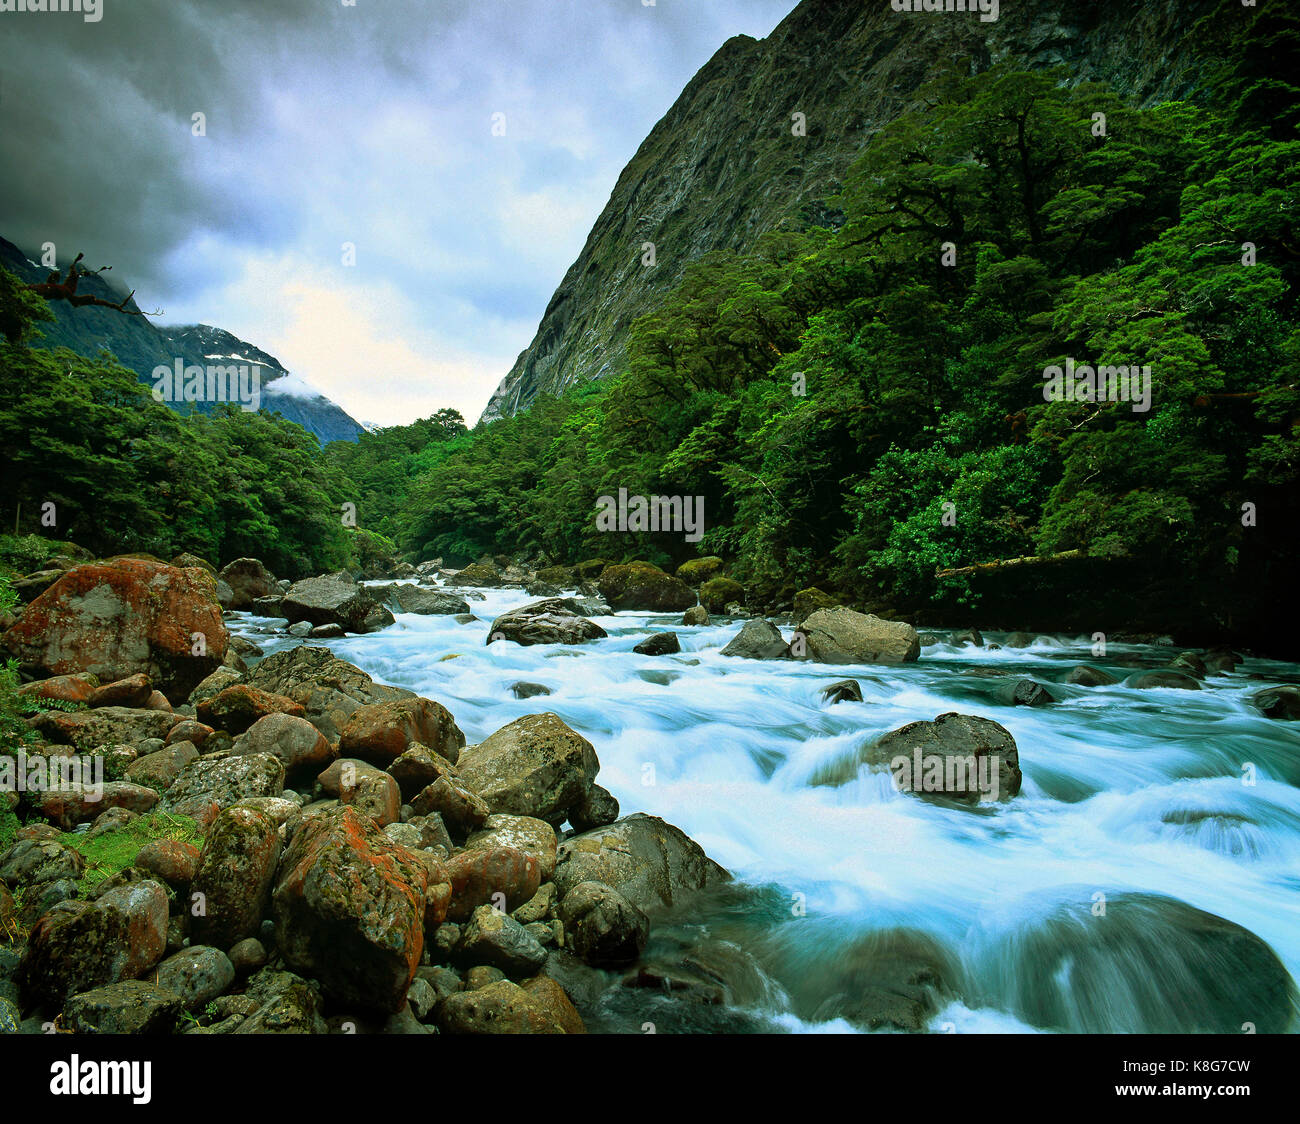 La Nouvelle-Zélande. Milford Sound. course rapide d'eau. Photo Stock